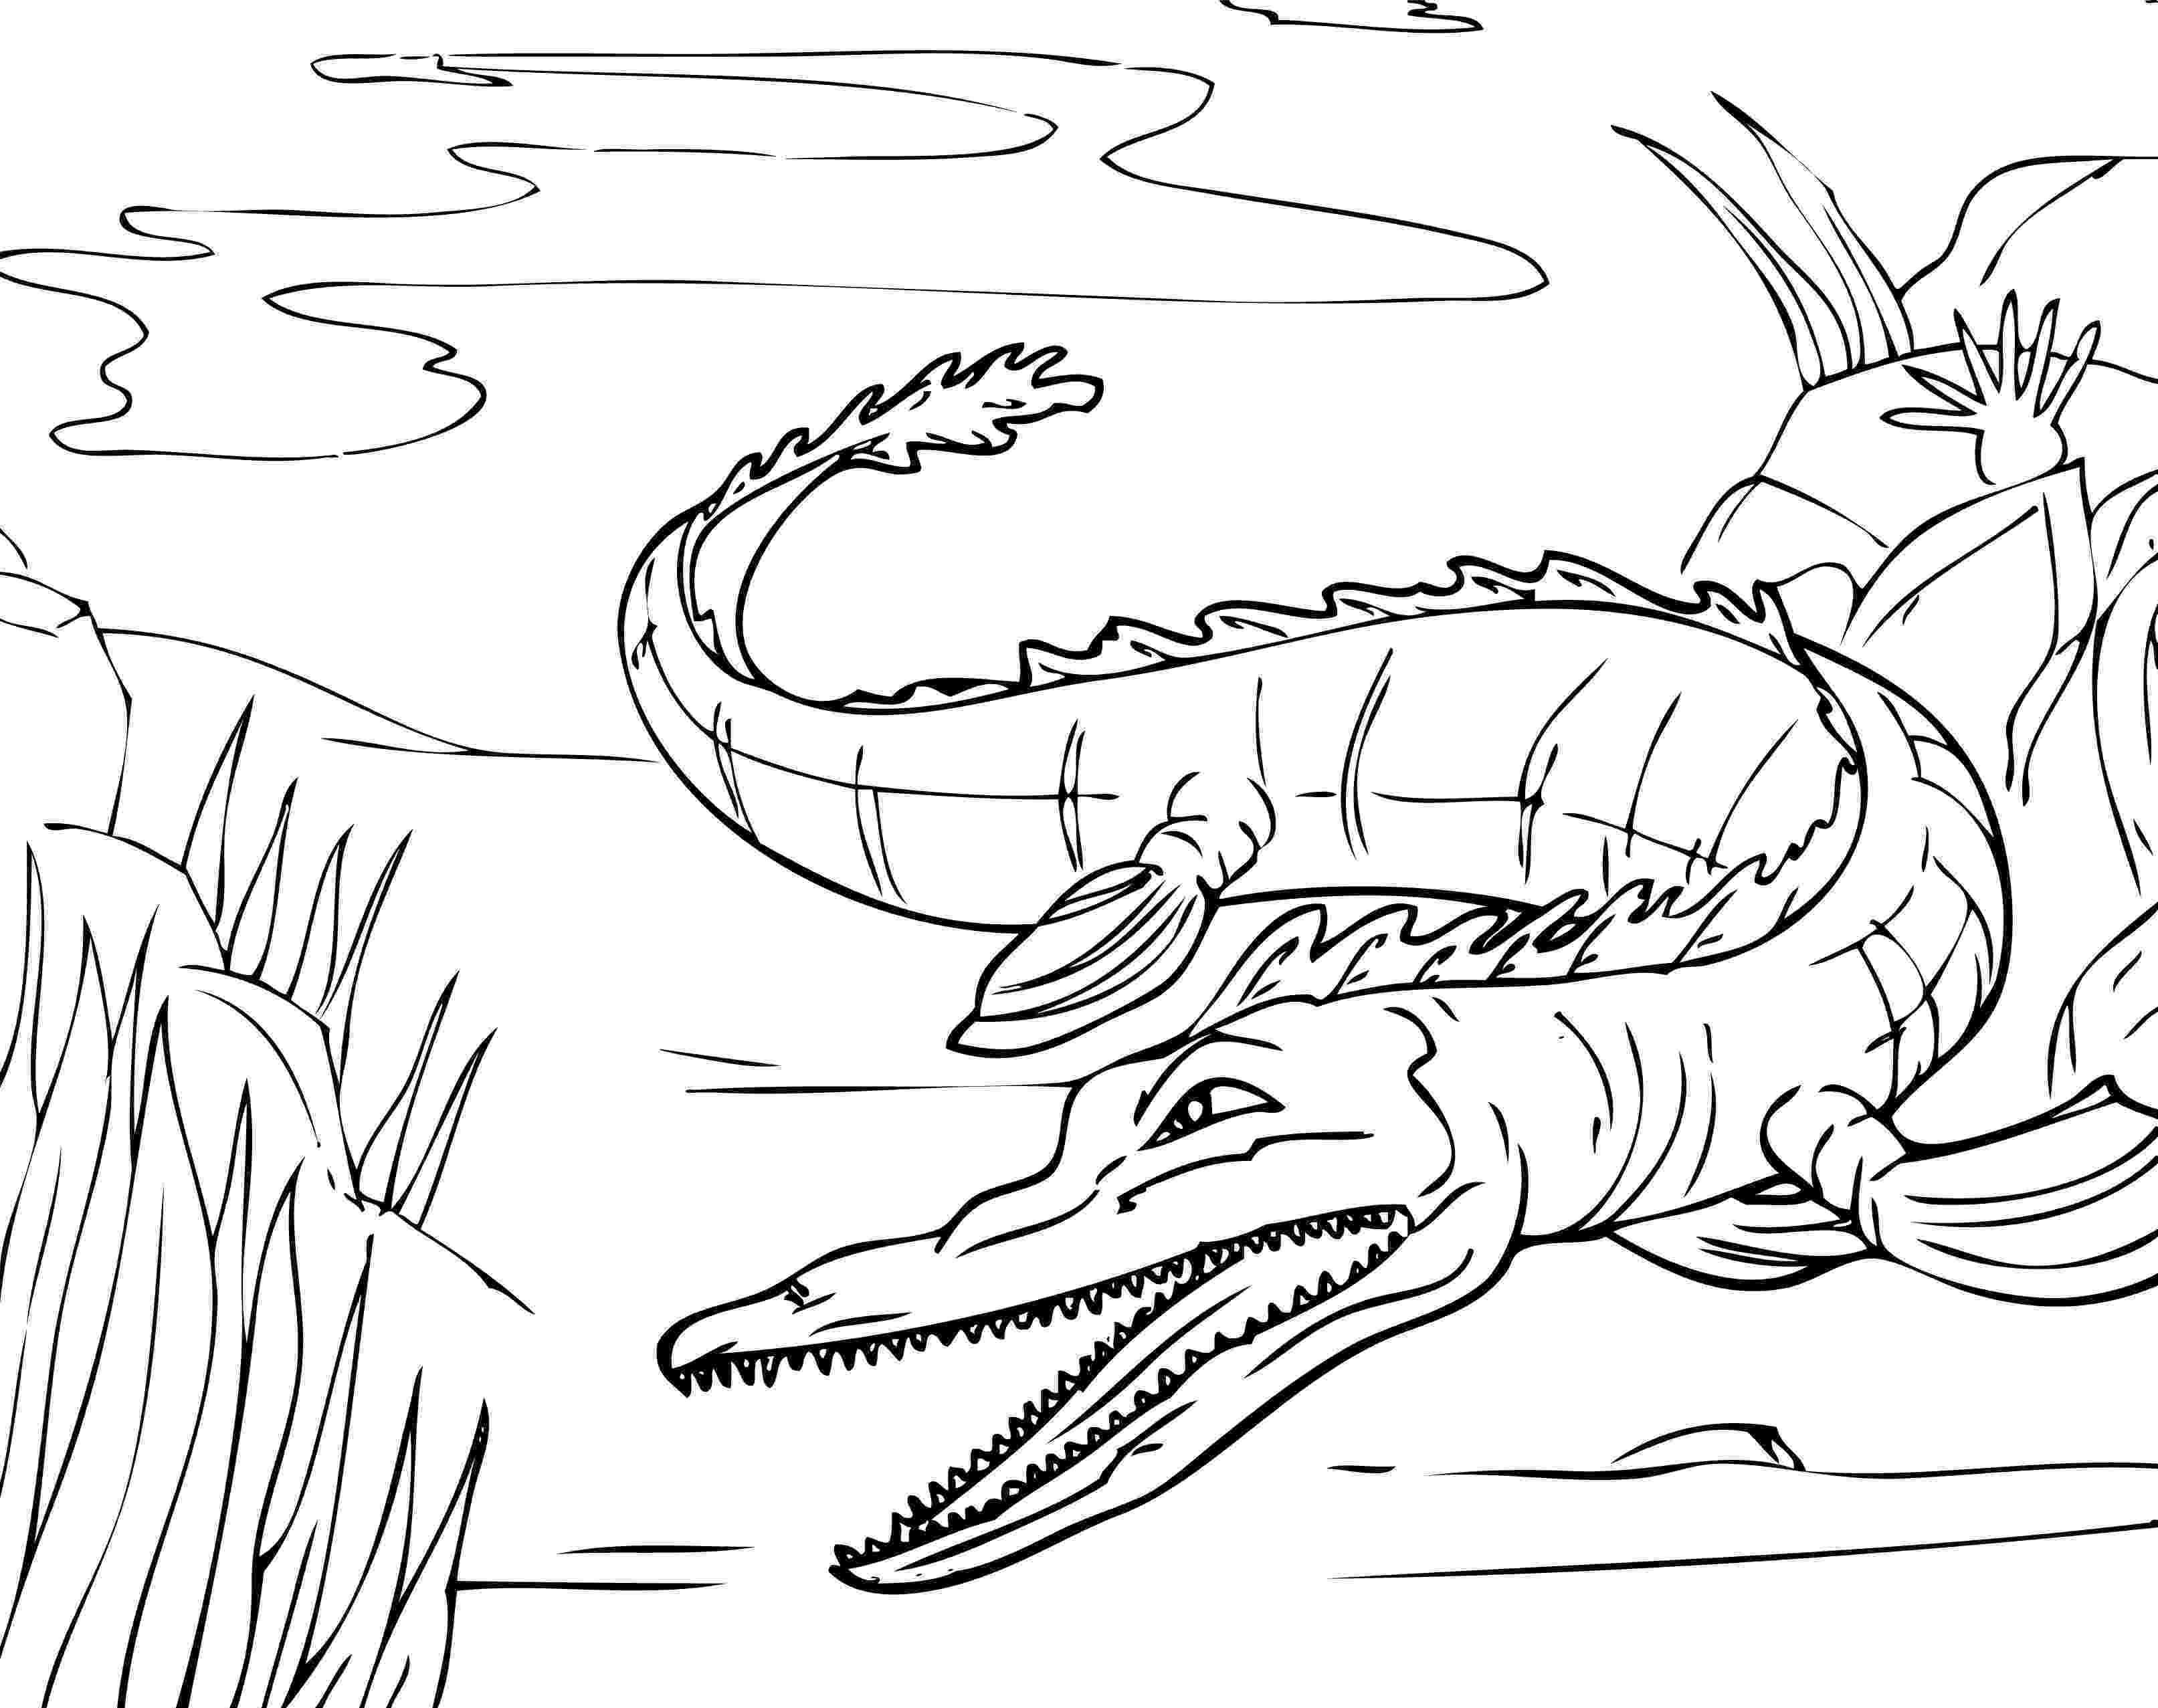 aligator coloring pages free printable alligator coloring pages for kids cool2bkids aligator coloring pages